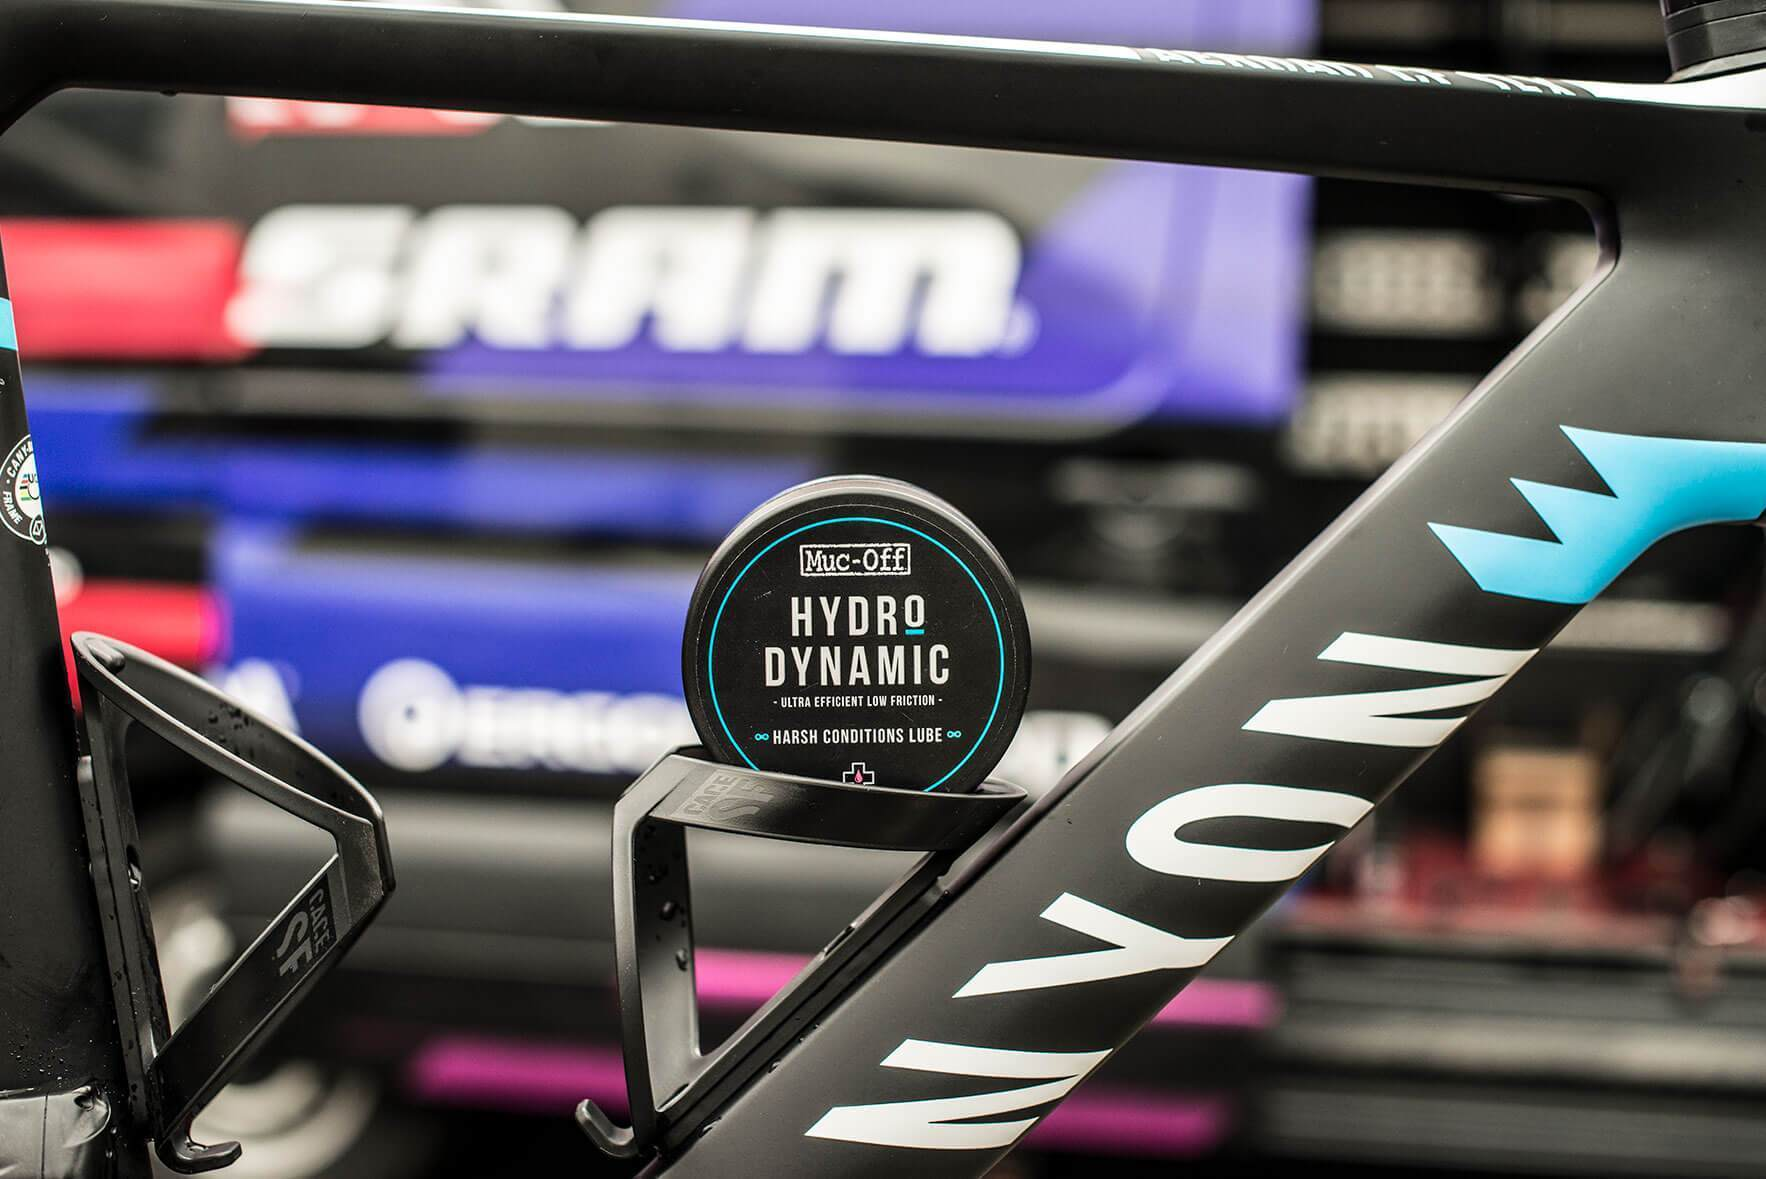 Harsh Conditions Lube placed in bottle cage on bike